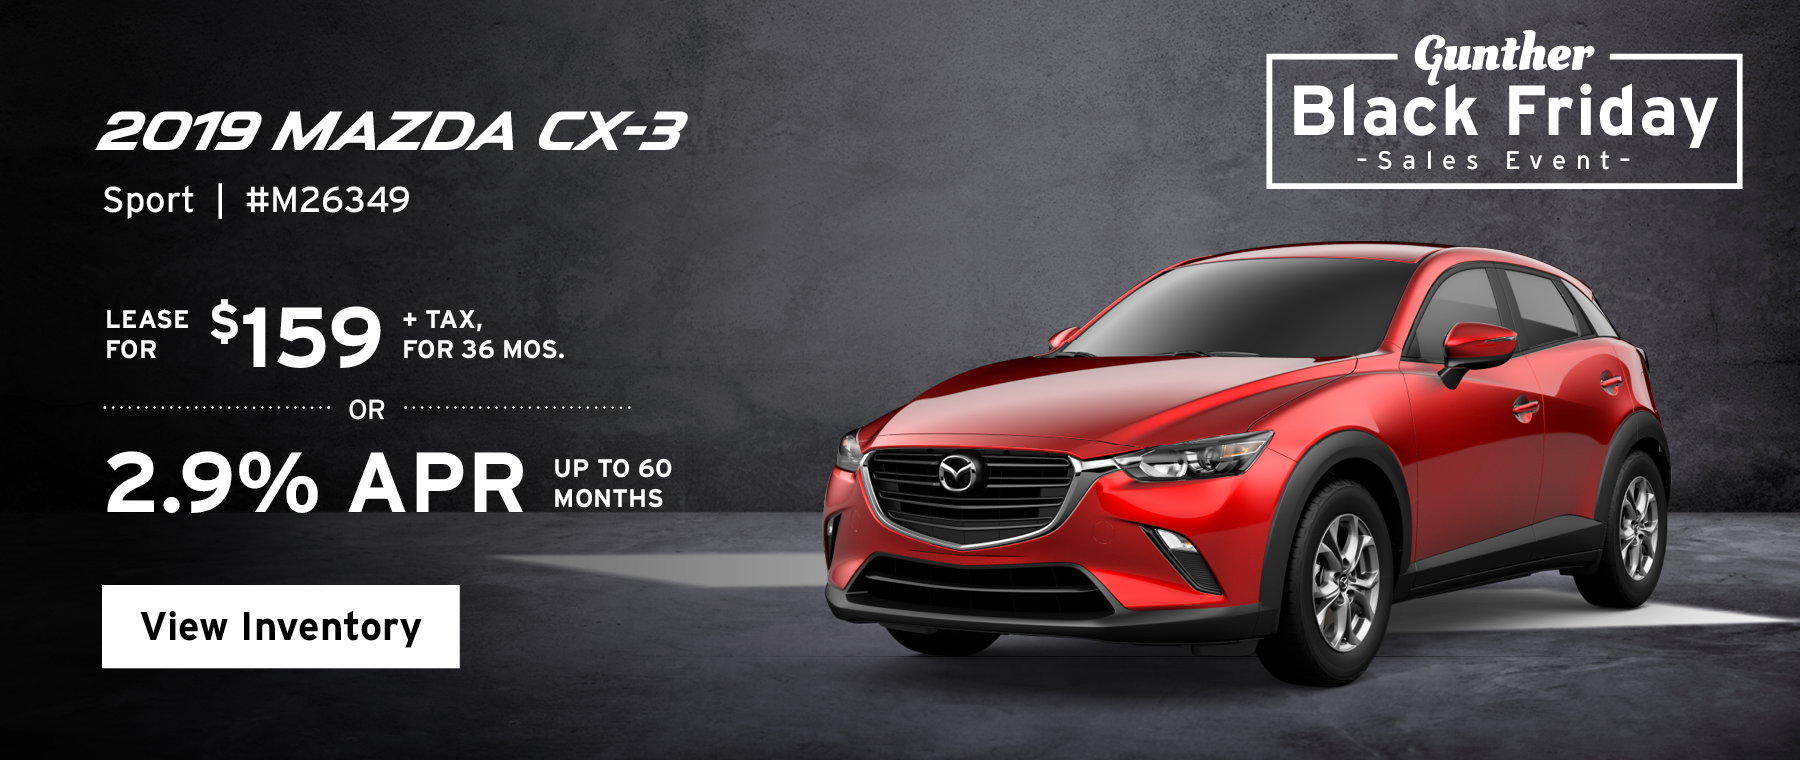 Lease the 2019 Mazda CX-3 Sport for $159, plus tax for 36 months, or 2.9% APR up to 60 months.